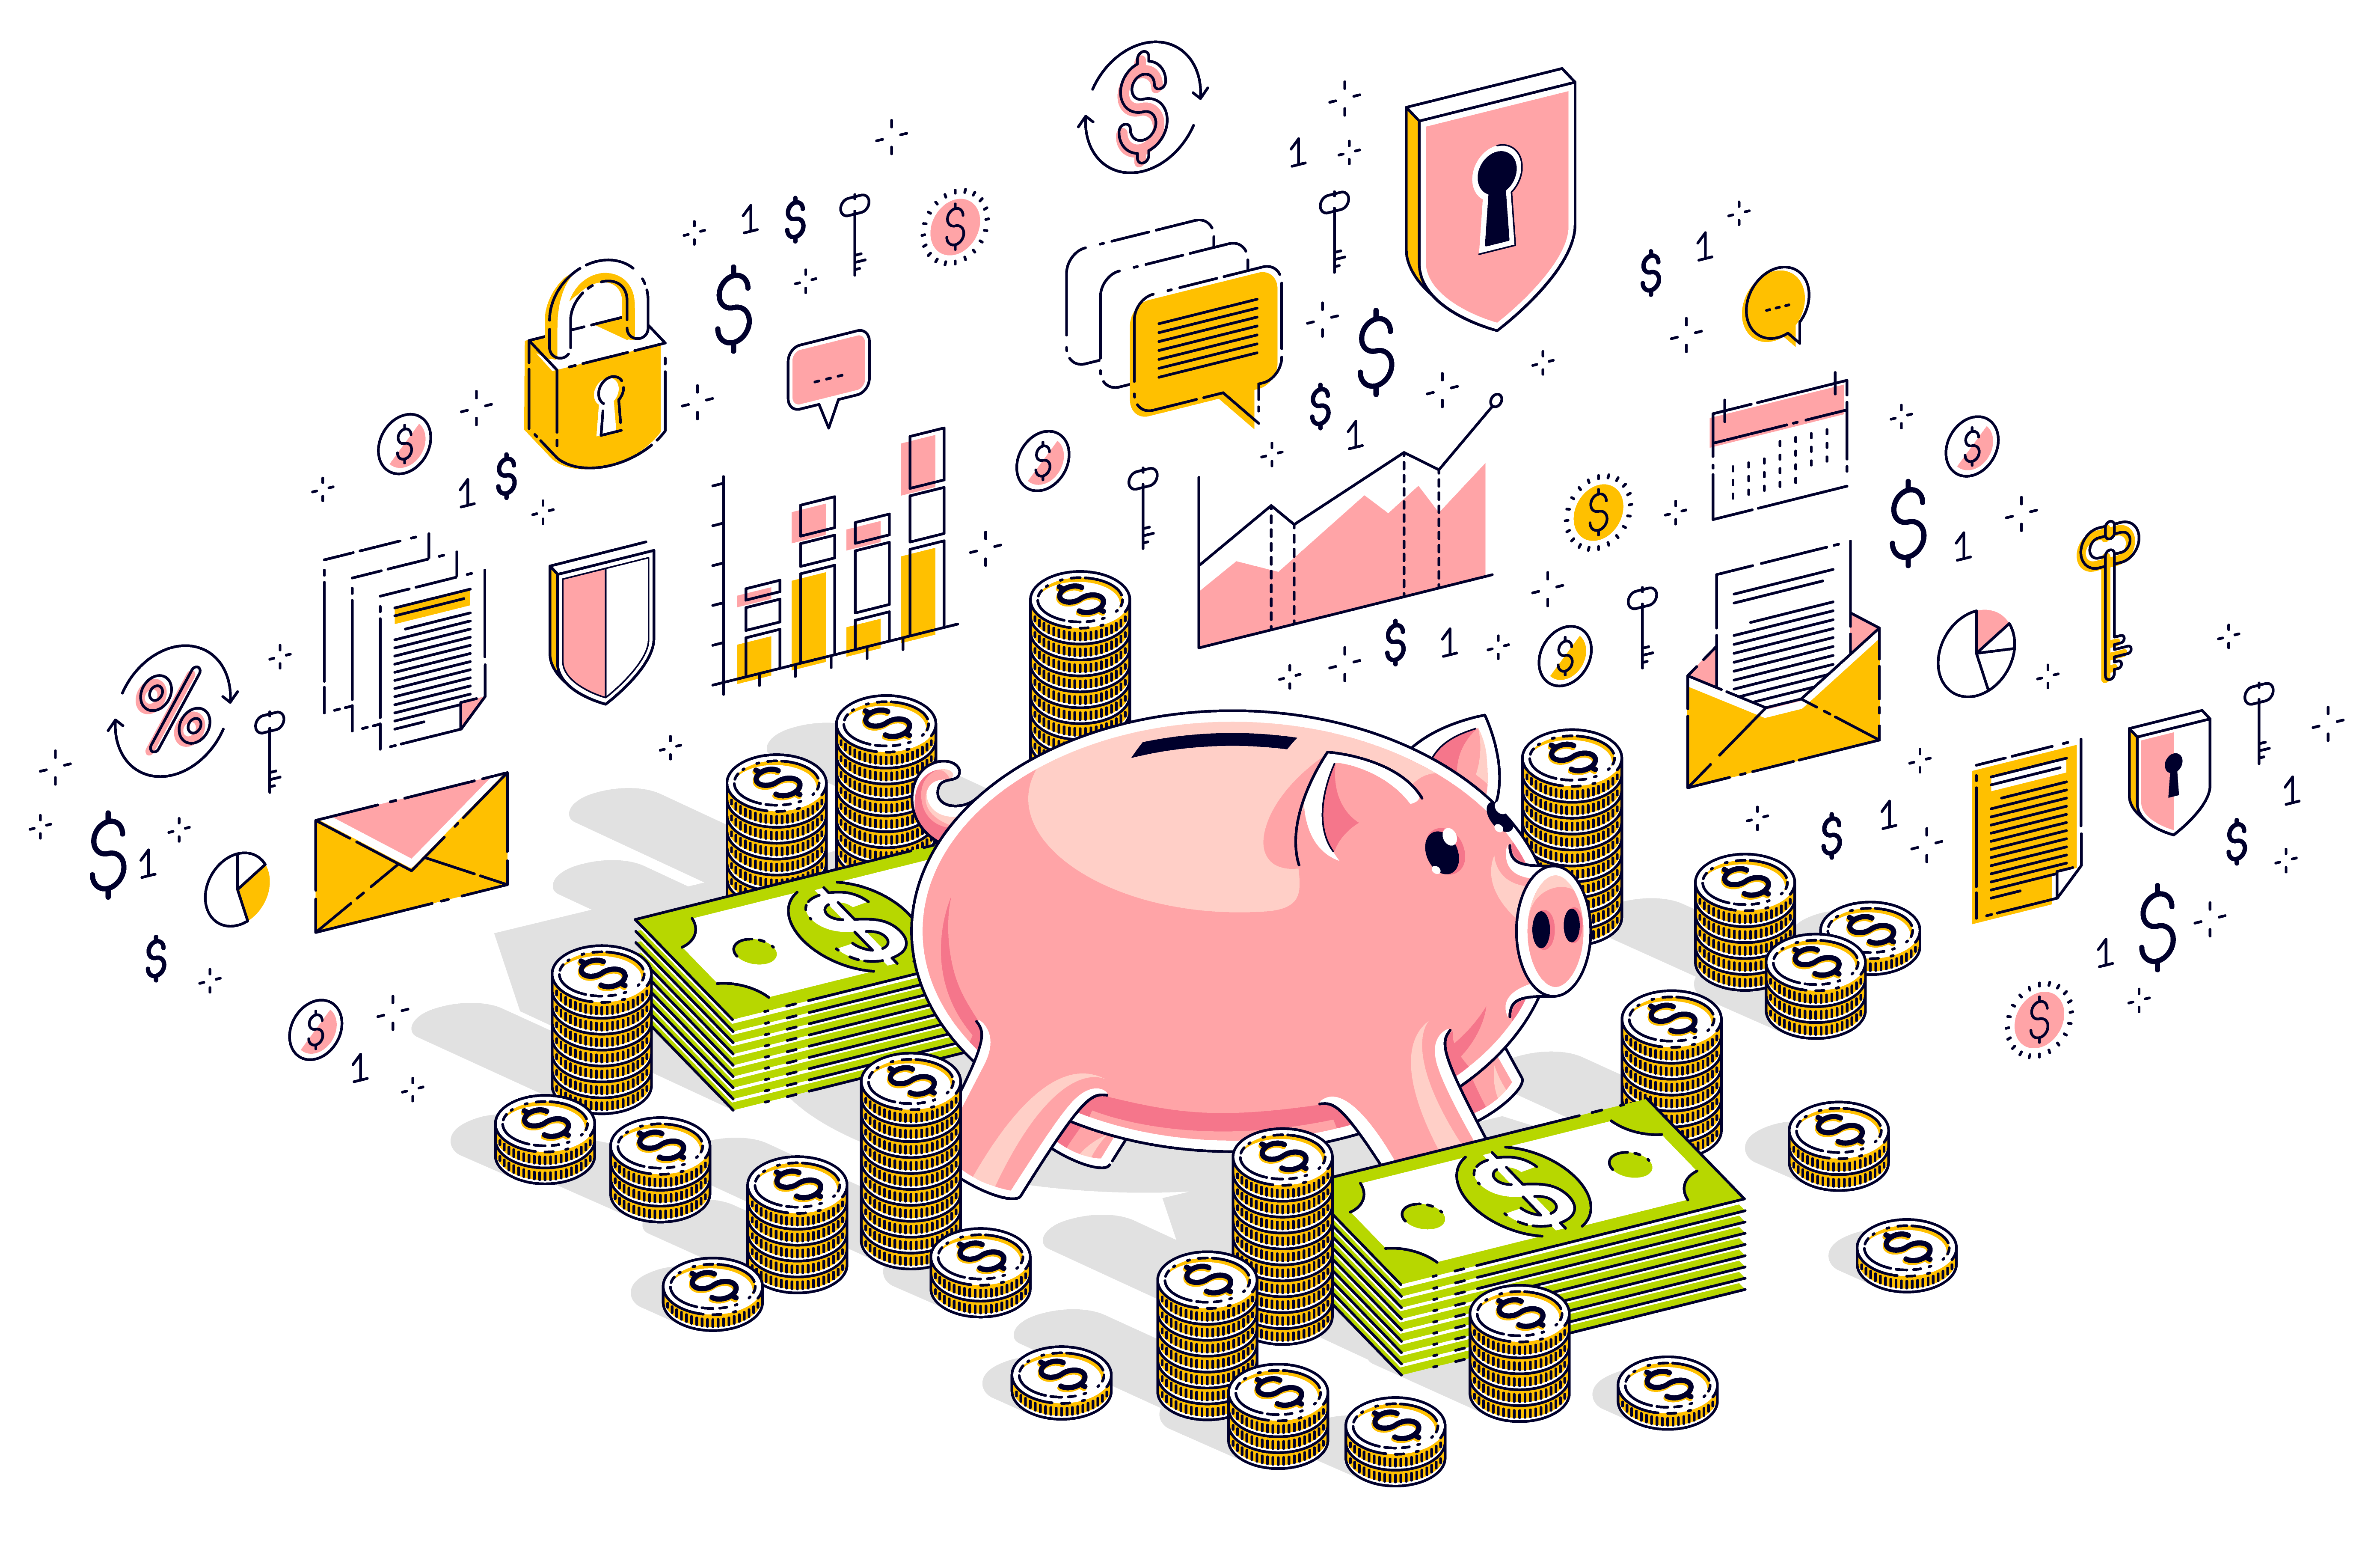 abstract illustration of economics and finance, including a piggy bank, stacks of coins, and an assortment of dollar bills